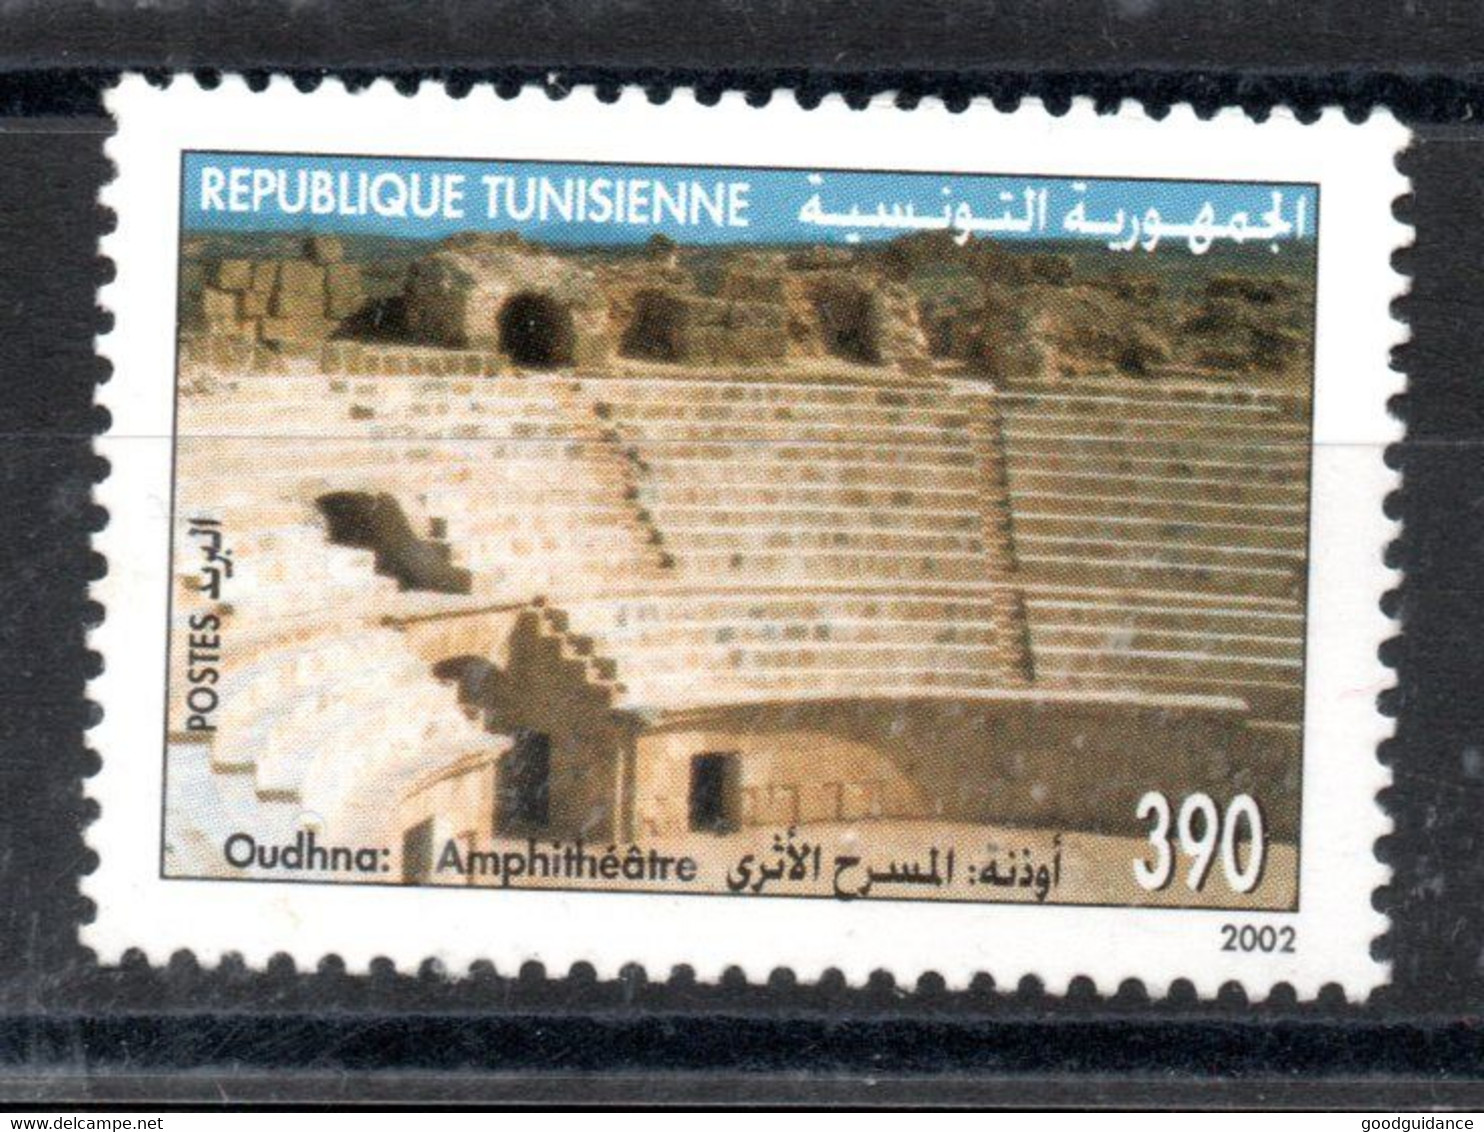 2002 - Tunisia - Archaelogical Sites And Monuments- Architecture - Archeological Site Of Oudhna- Set 1v MNH** - Archéologie